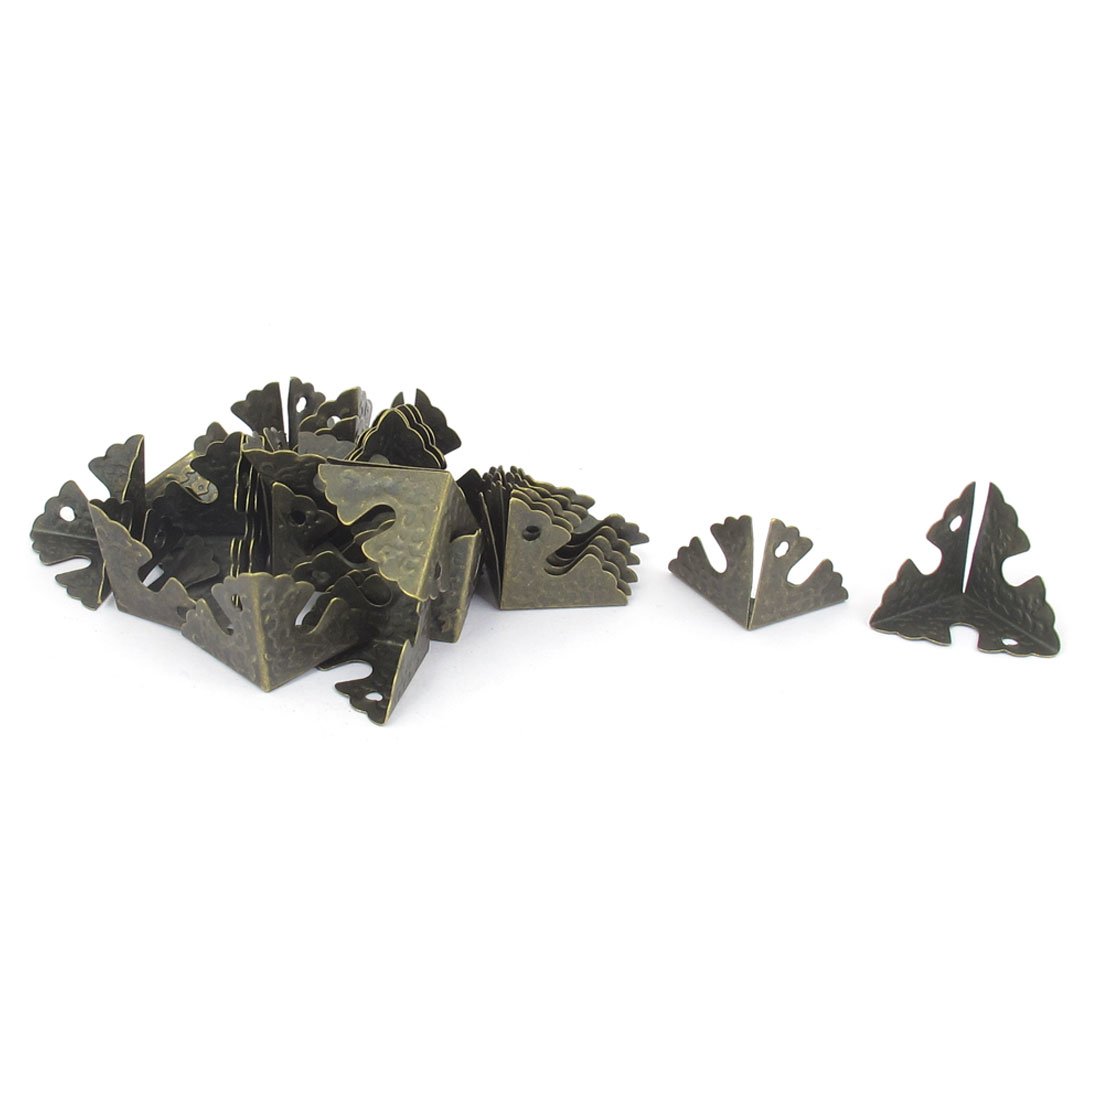 30 Pcs 22mm x 22mm x 22mm Chair Door Triangle Corner Braces Angle Brackets Furniture Fastener Bronze Tone